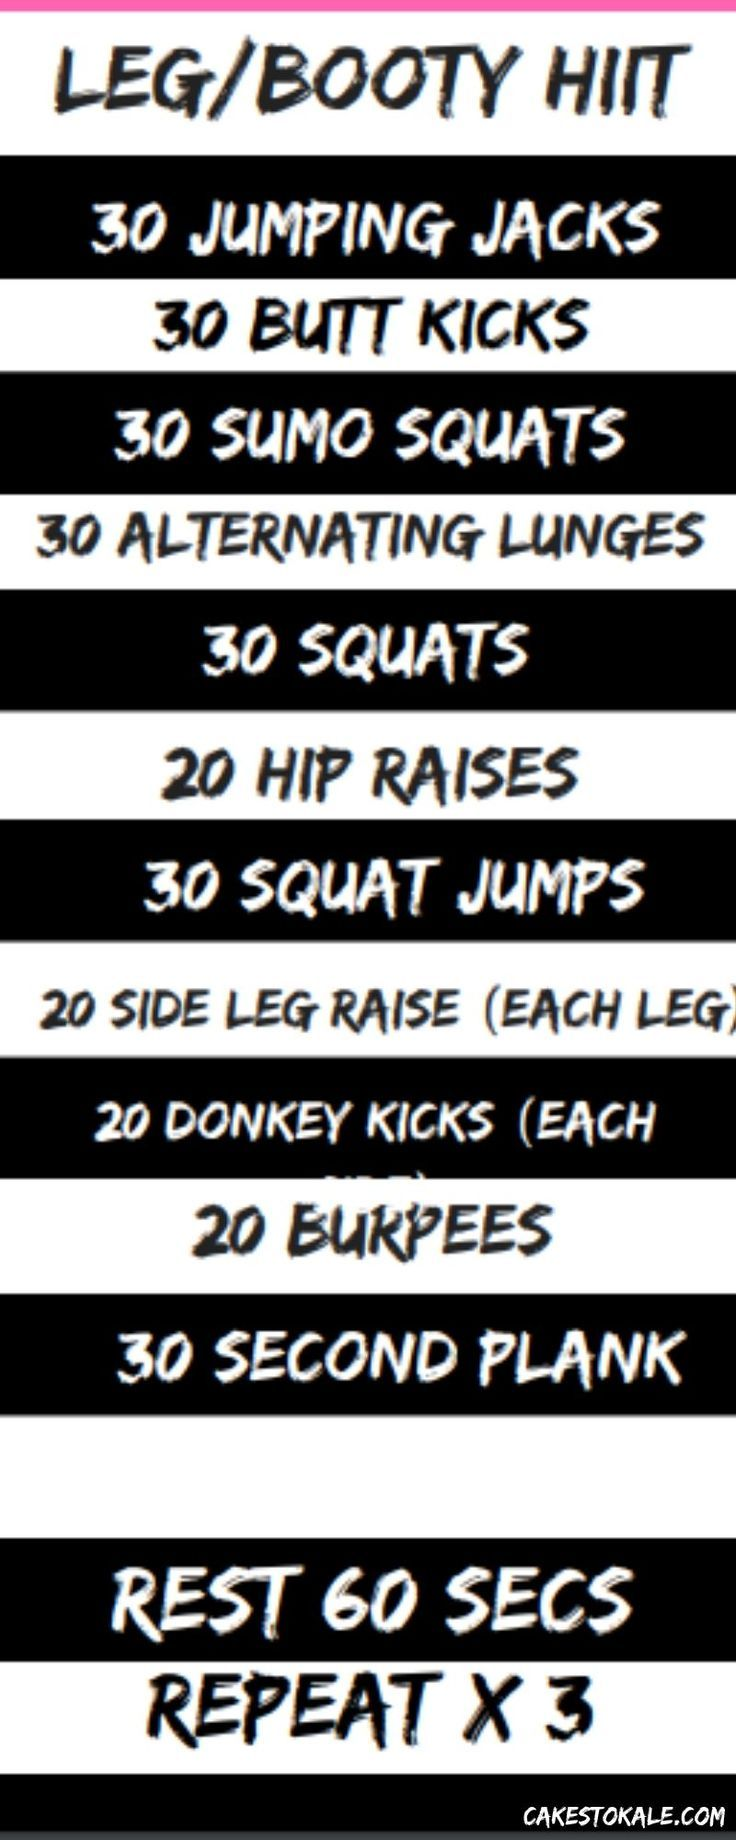 7 Ways To Increase Physical Activity In Daily Life Hiit Workout At Home Hiit Leg Workout At Home